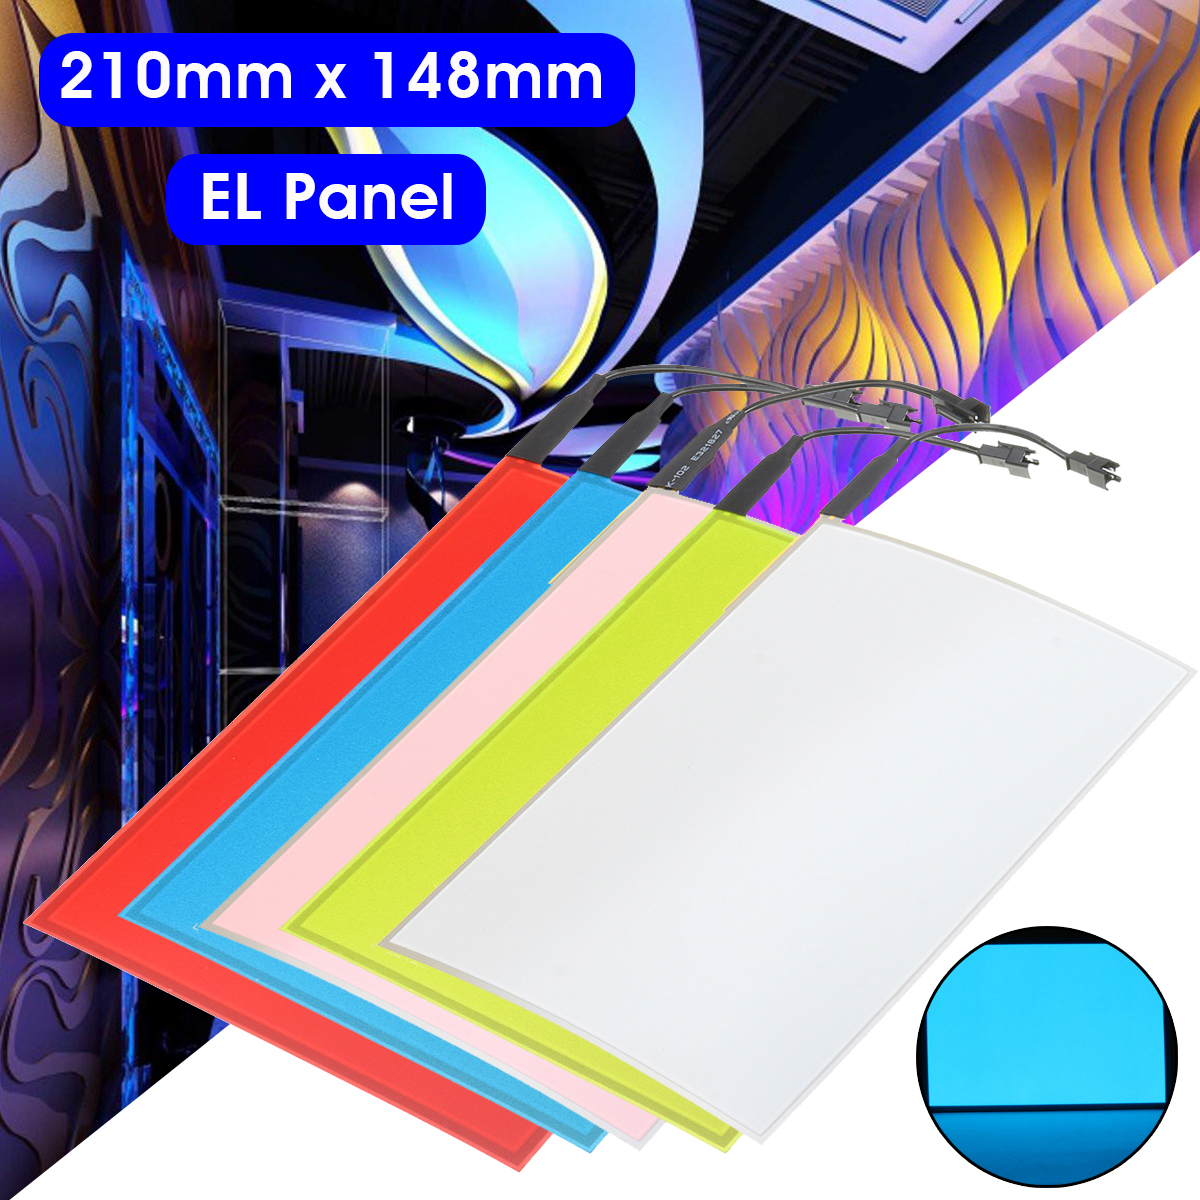 12v A5 El Neon Electroluminescent Panel Sheet Cuttable Lights Neon Film Photo Sheet Paper